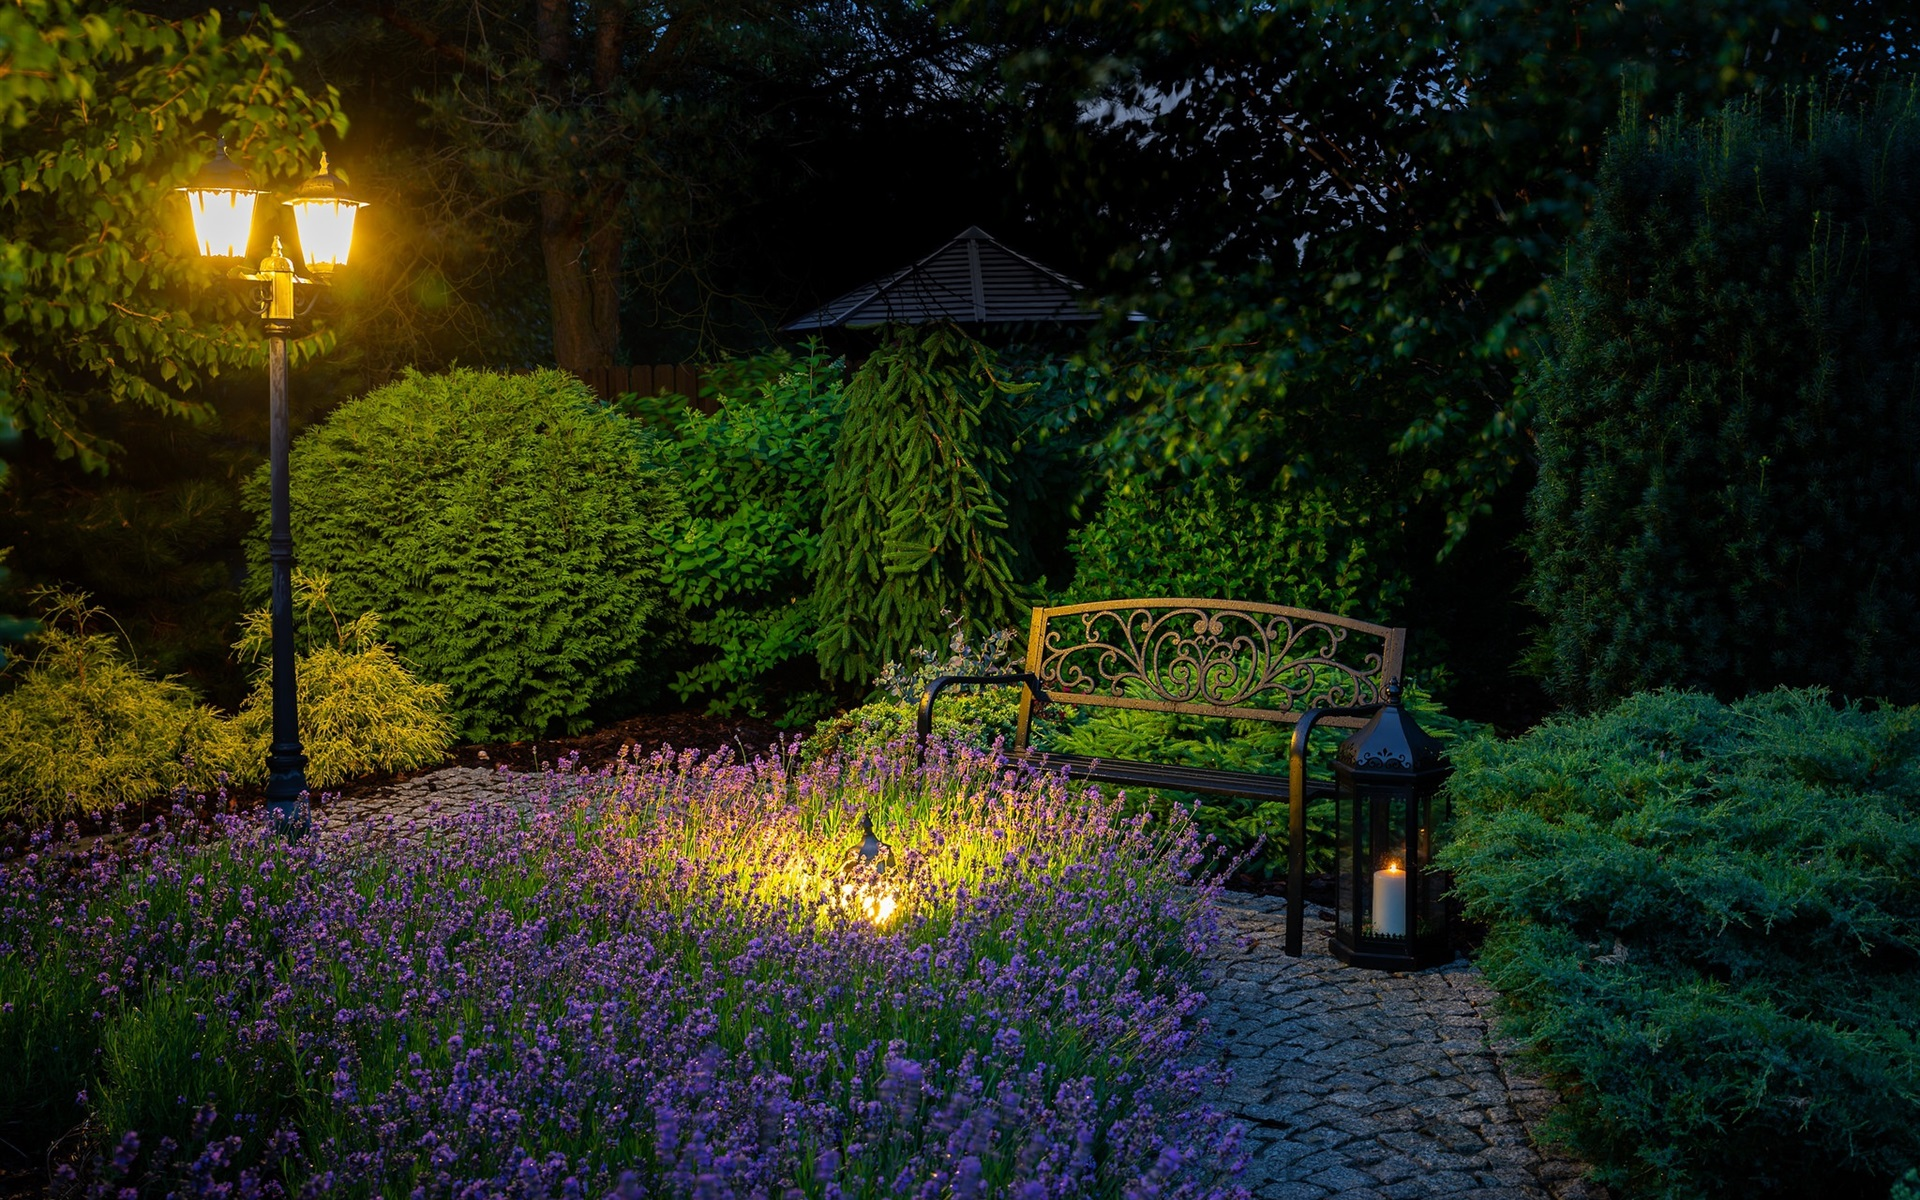 Wallpaper Night Park Bench Lavender Lights 1920x1200 Hd Picture